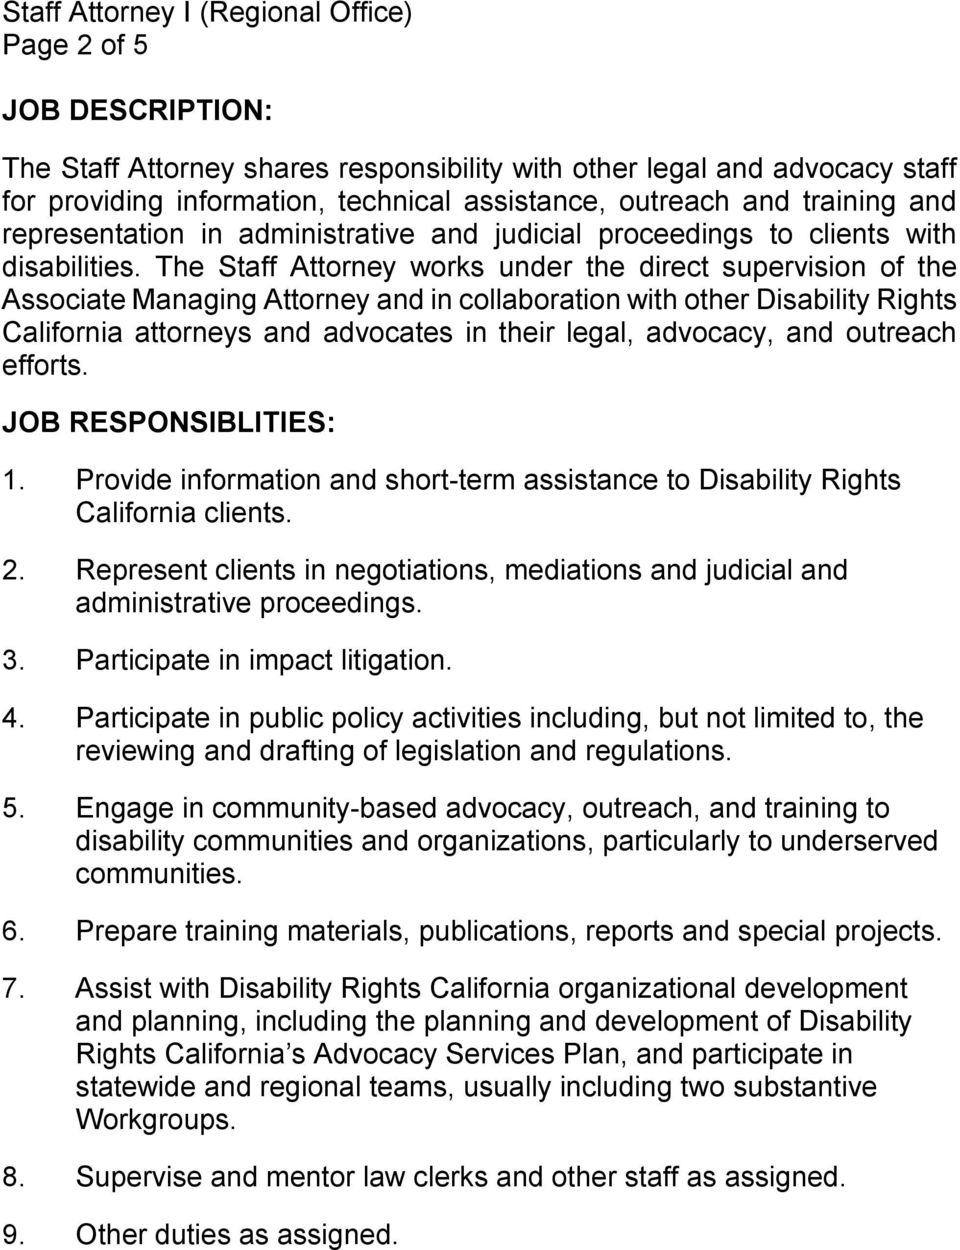 The Staff Attorney works under the direct supervision of the Associate Managing Attorney and in collaboration with other Disability Rights California attorneys and advocates in their legal, advocacy,